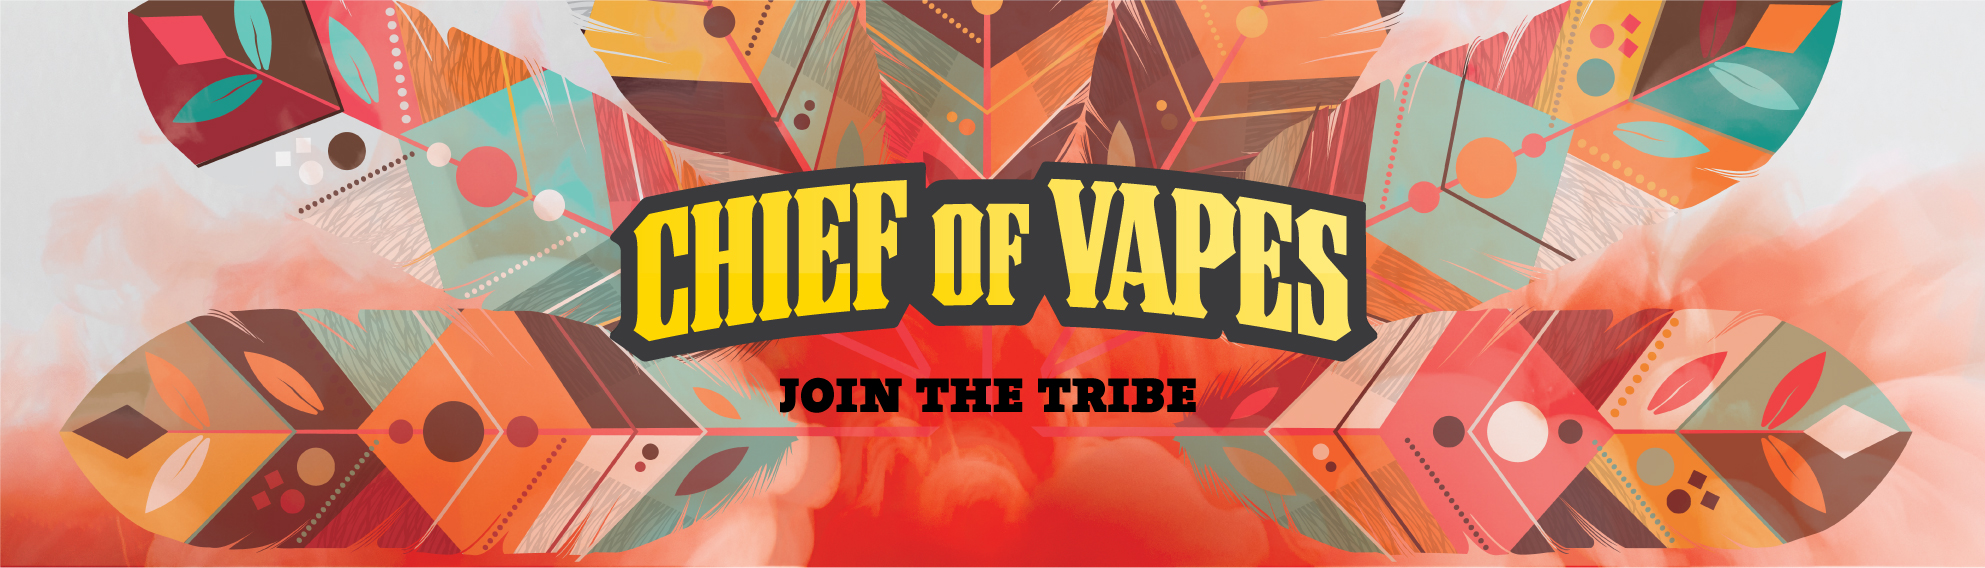 Chief of Vapes Banner